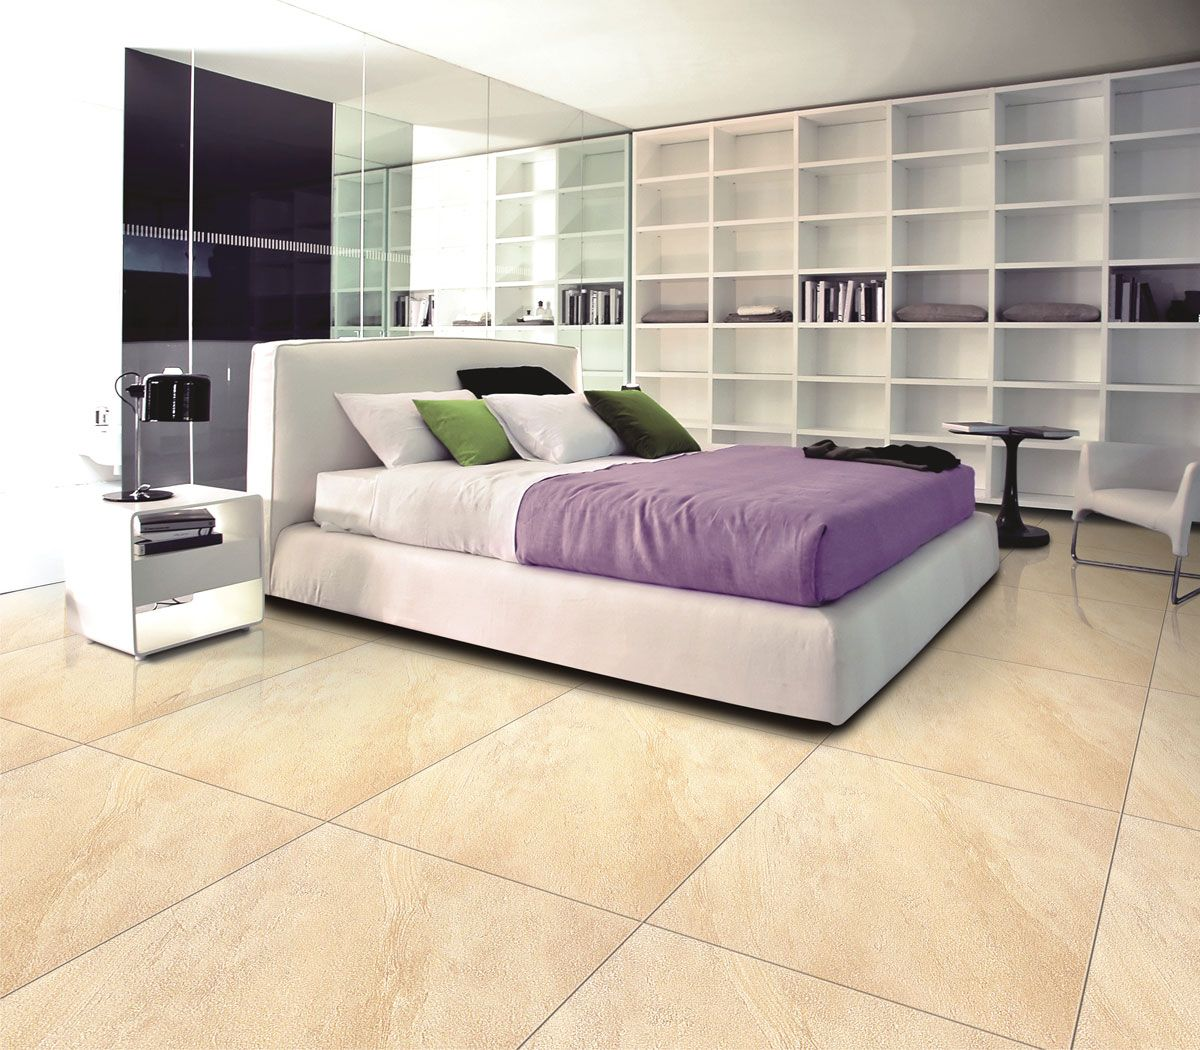 37 Luxury Tiles Bedroom Floor Sketch Decortez Bedroom